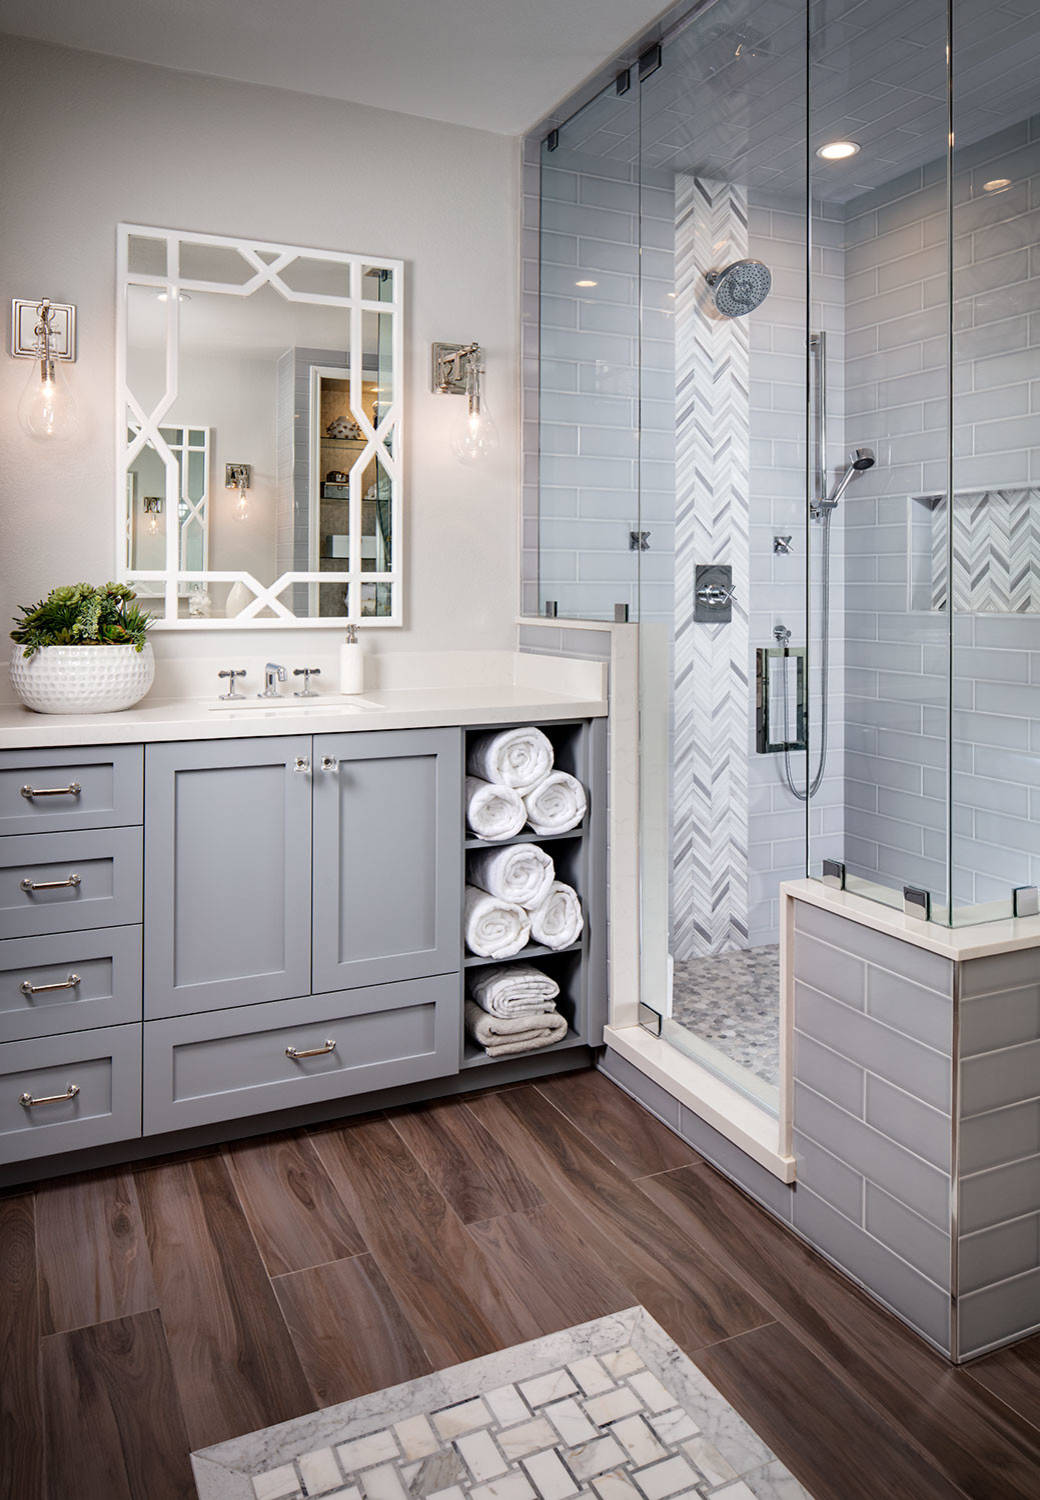 75 Beautiful Medium Tone Wood Floor Bathroom Pictures Ideas November 2020 Houzz